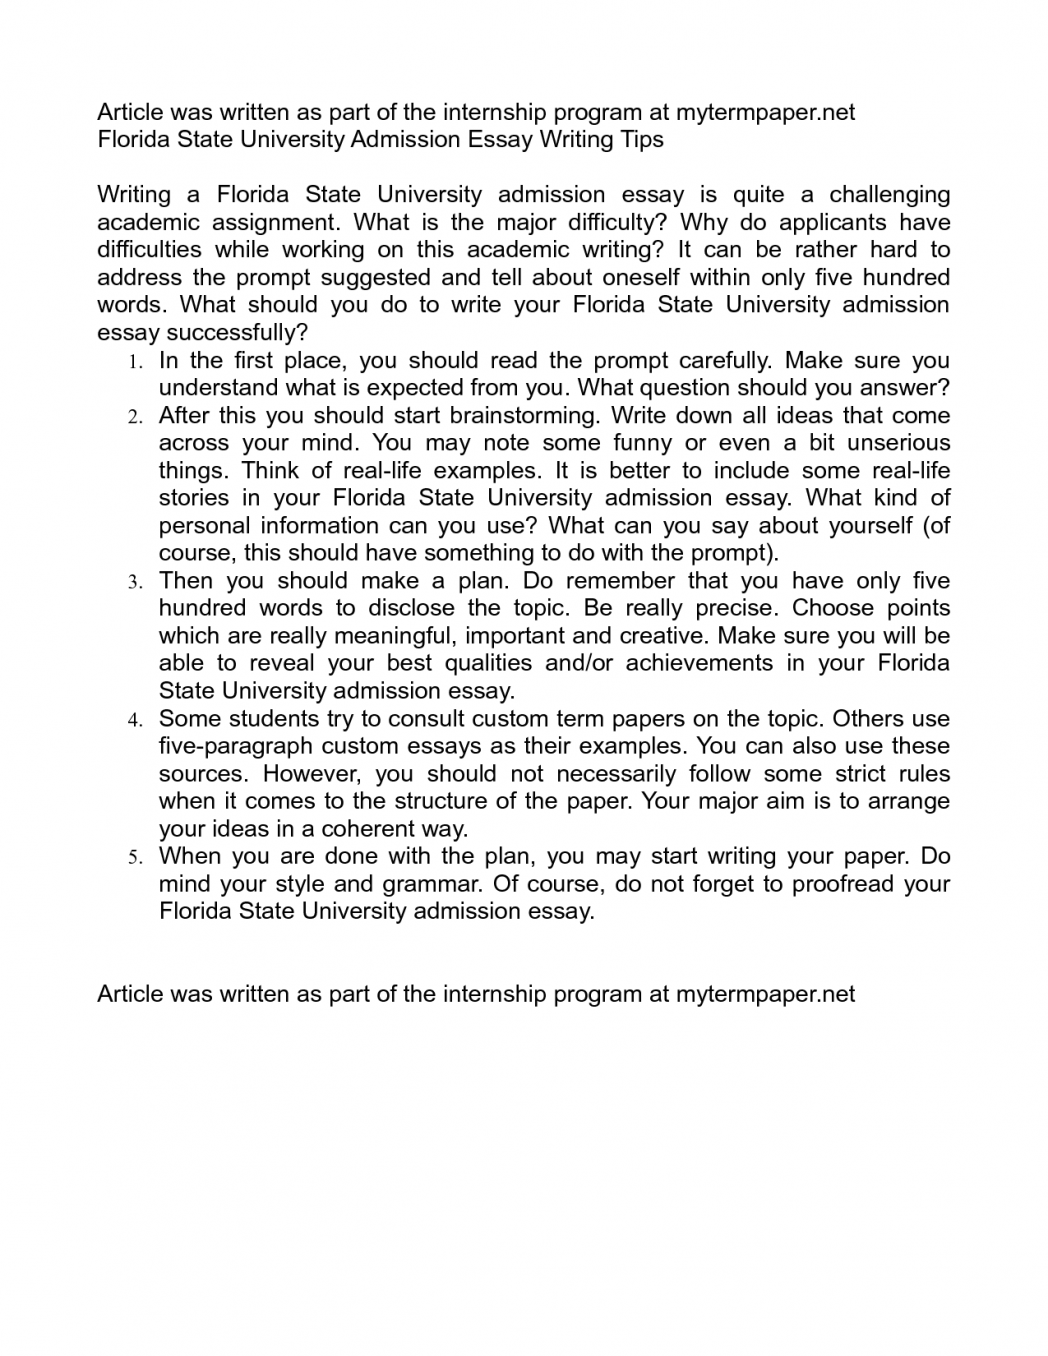 002 Fsu Essay Samples Research Paper Help Florida State Universitys Svfal 1048x1356 Surprising Guidelines Topics Full